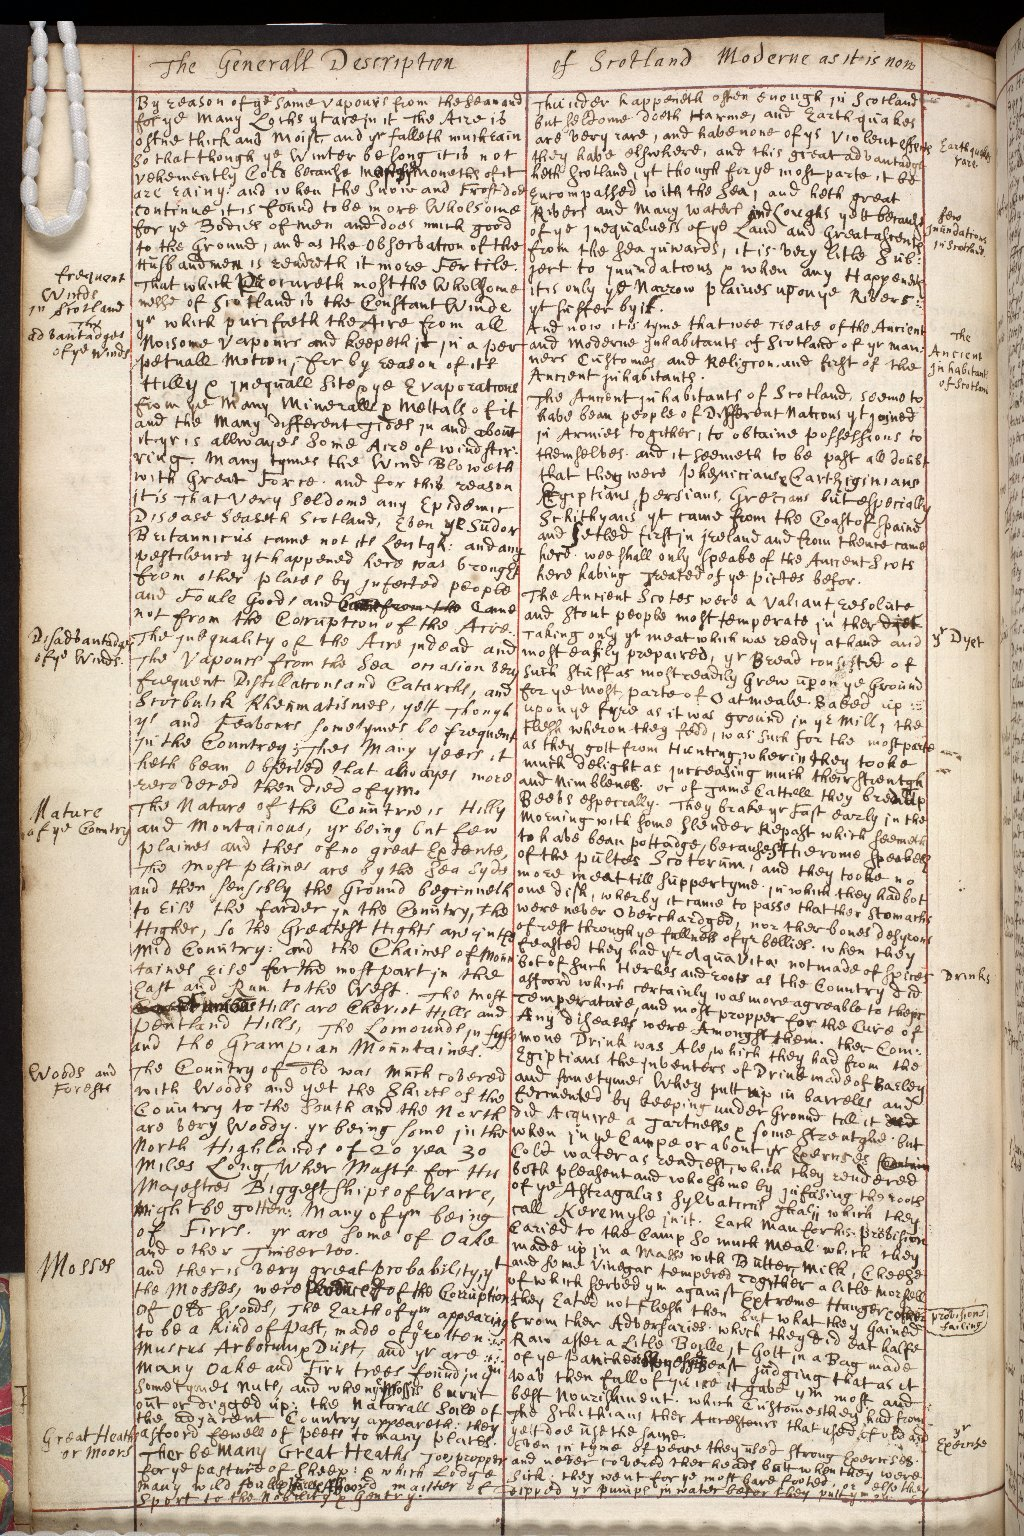 Atlas Scoticus, or a Description of Scotland Ancient and Modern. [023 of 259]